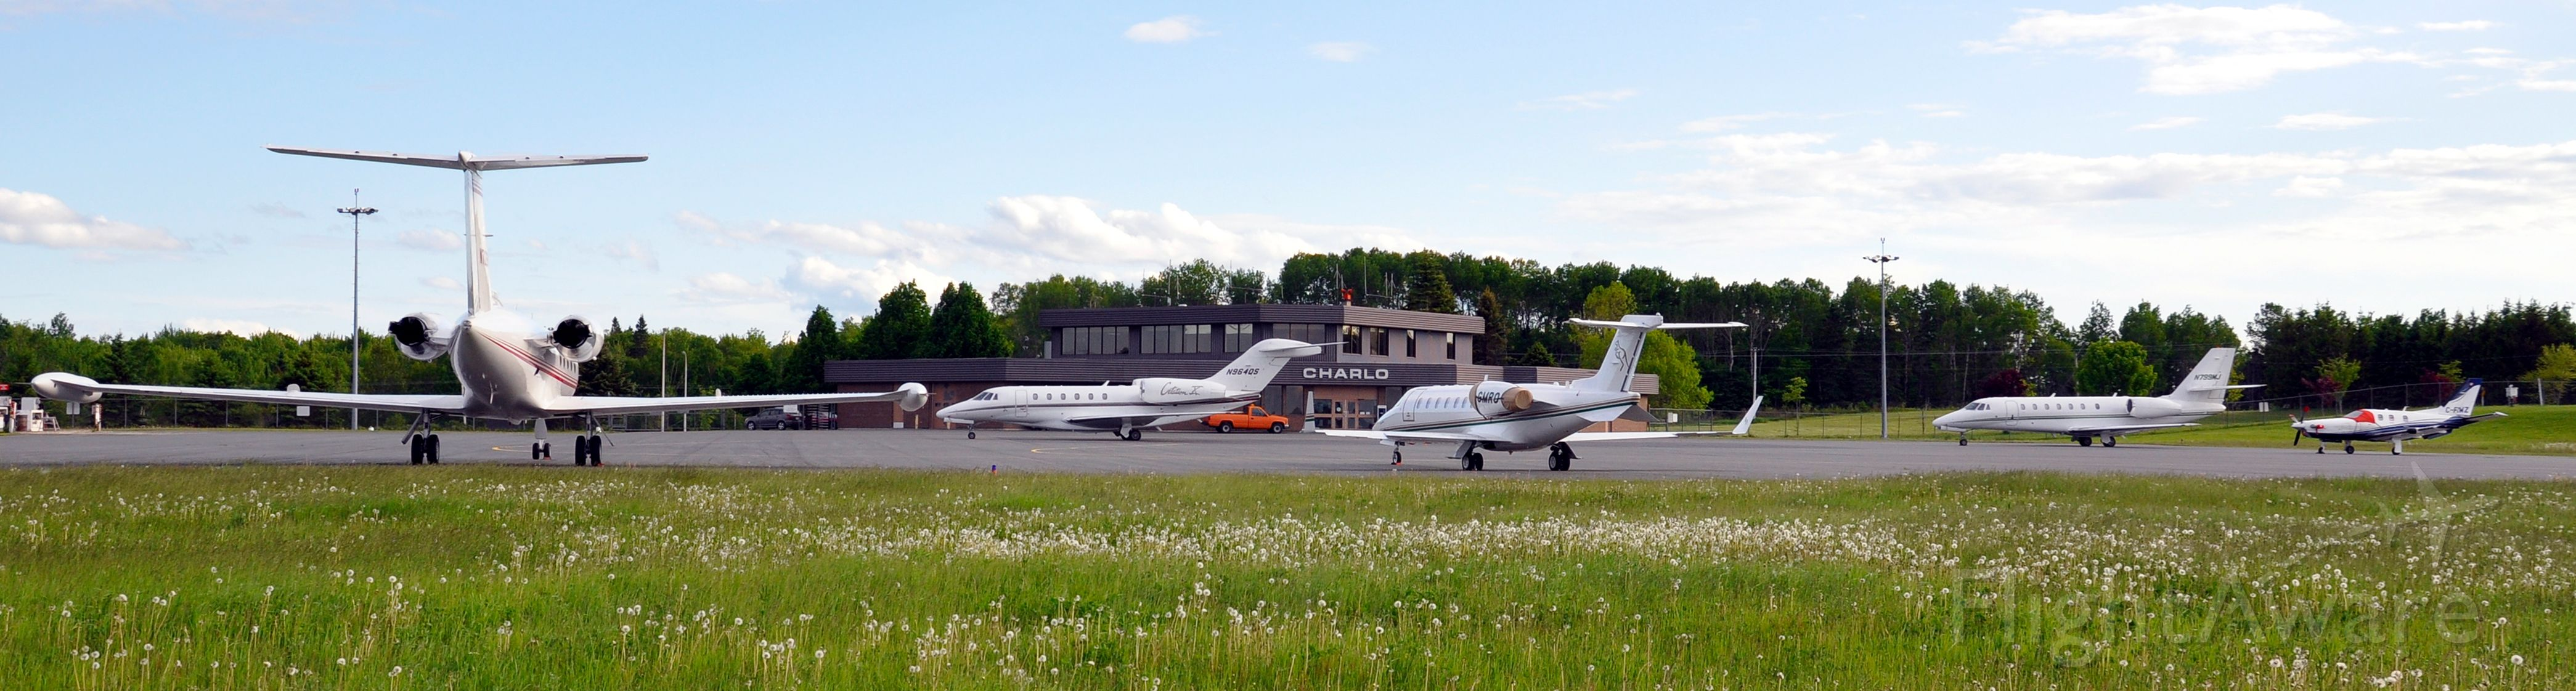 Cessna Citation X (N964QS) - A busy day on the ramp in Charlo, NB